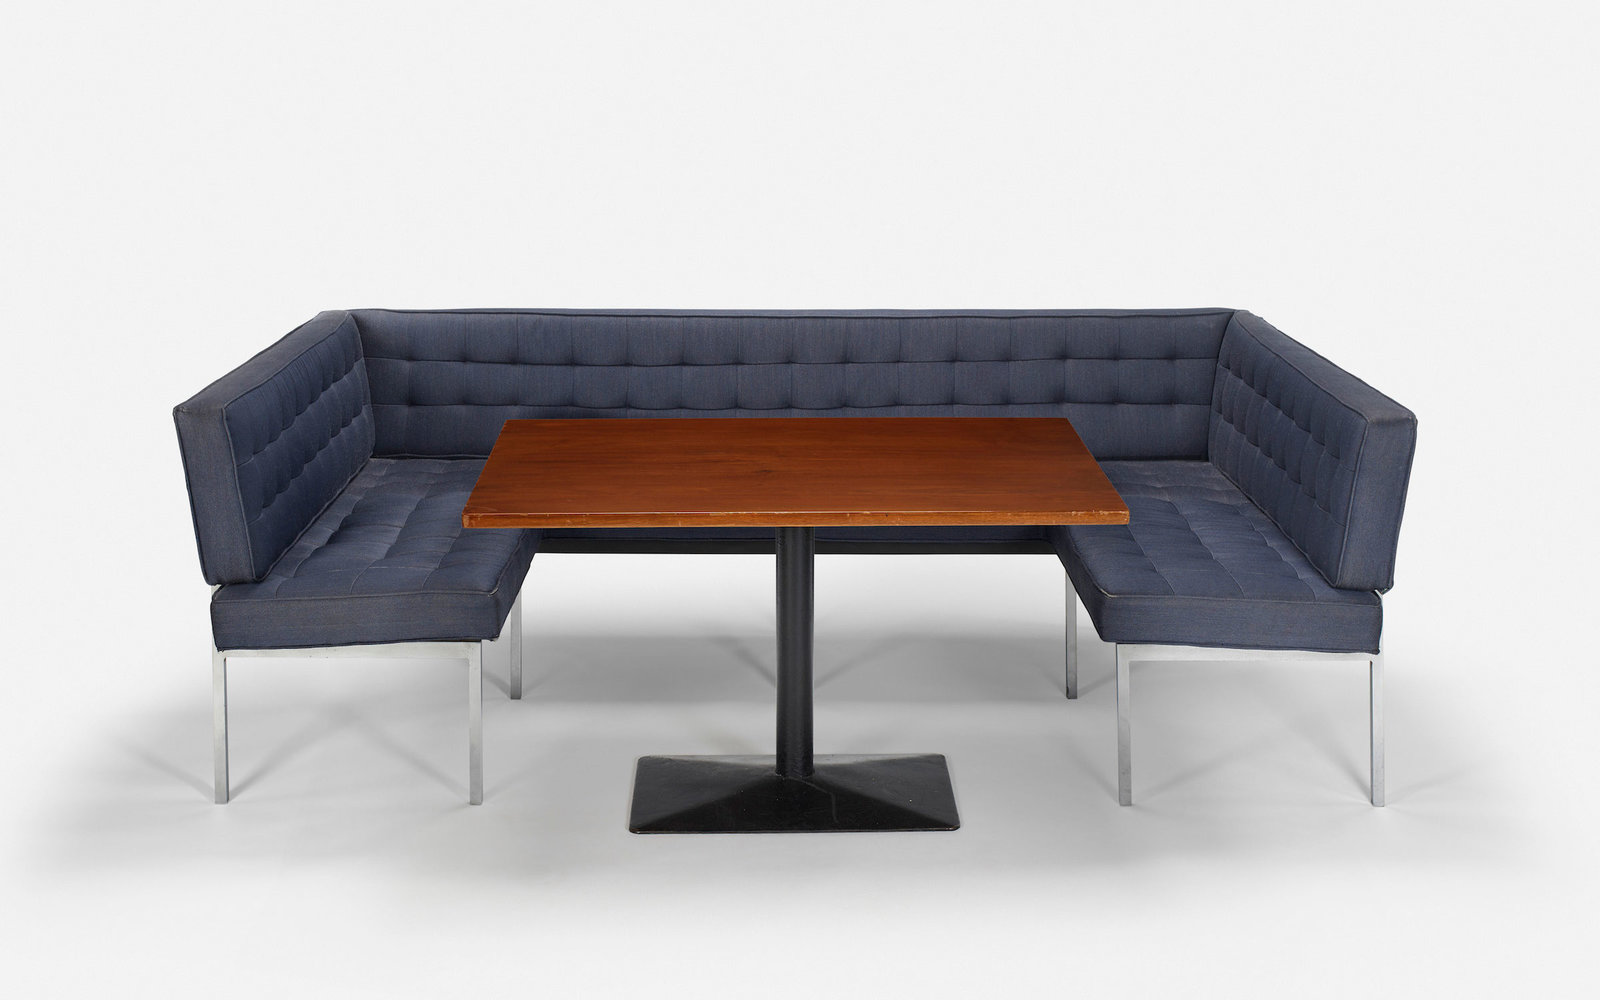 Three-Sided Banquette